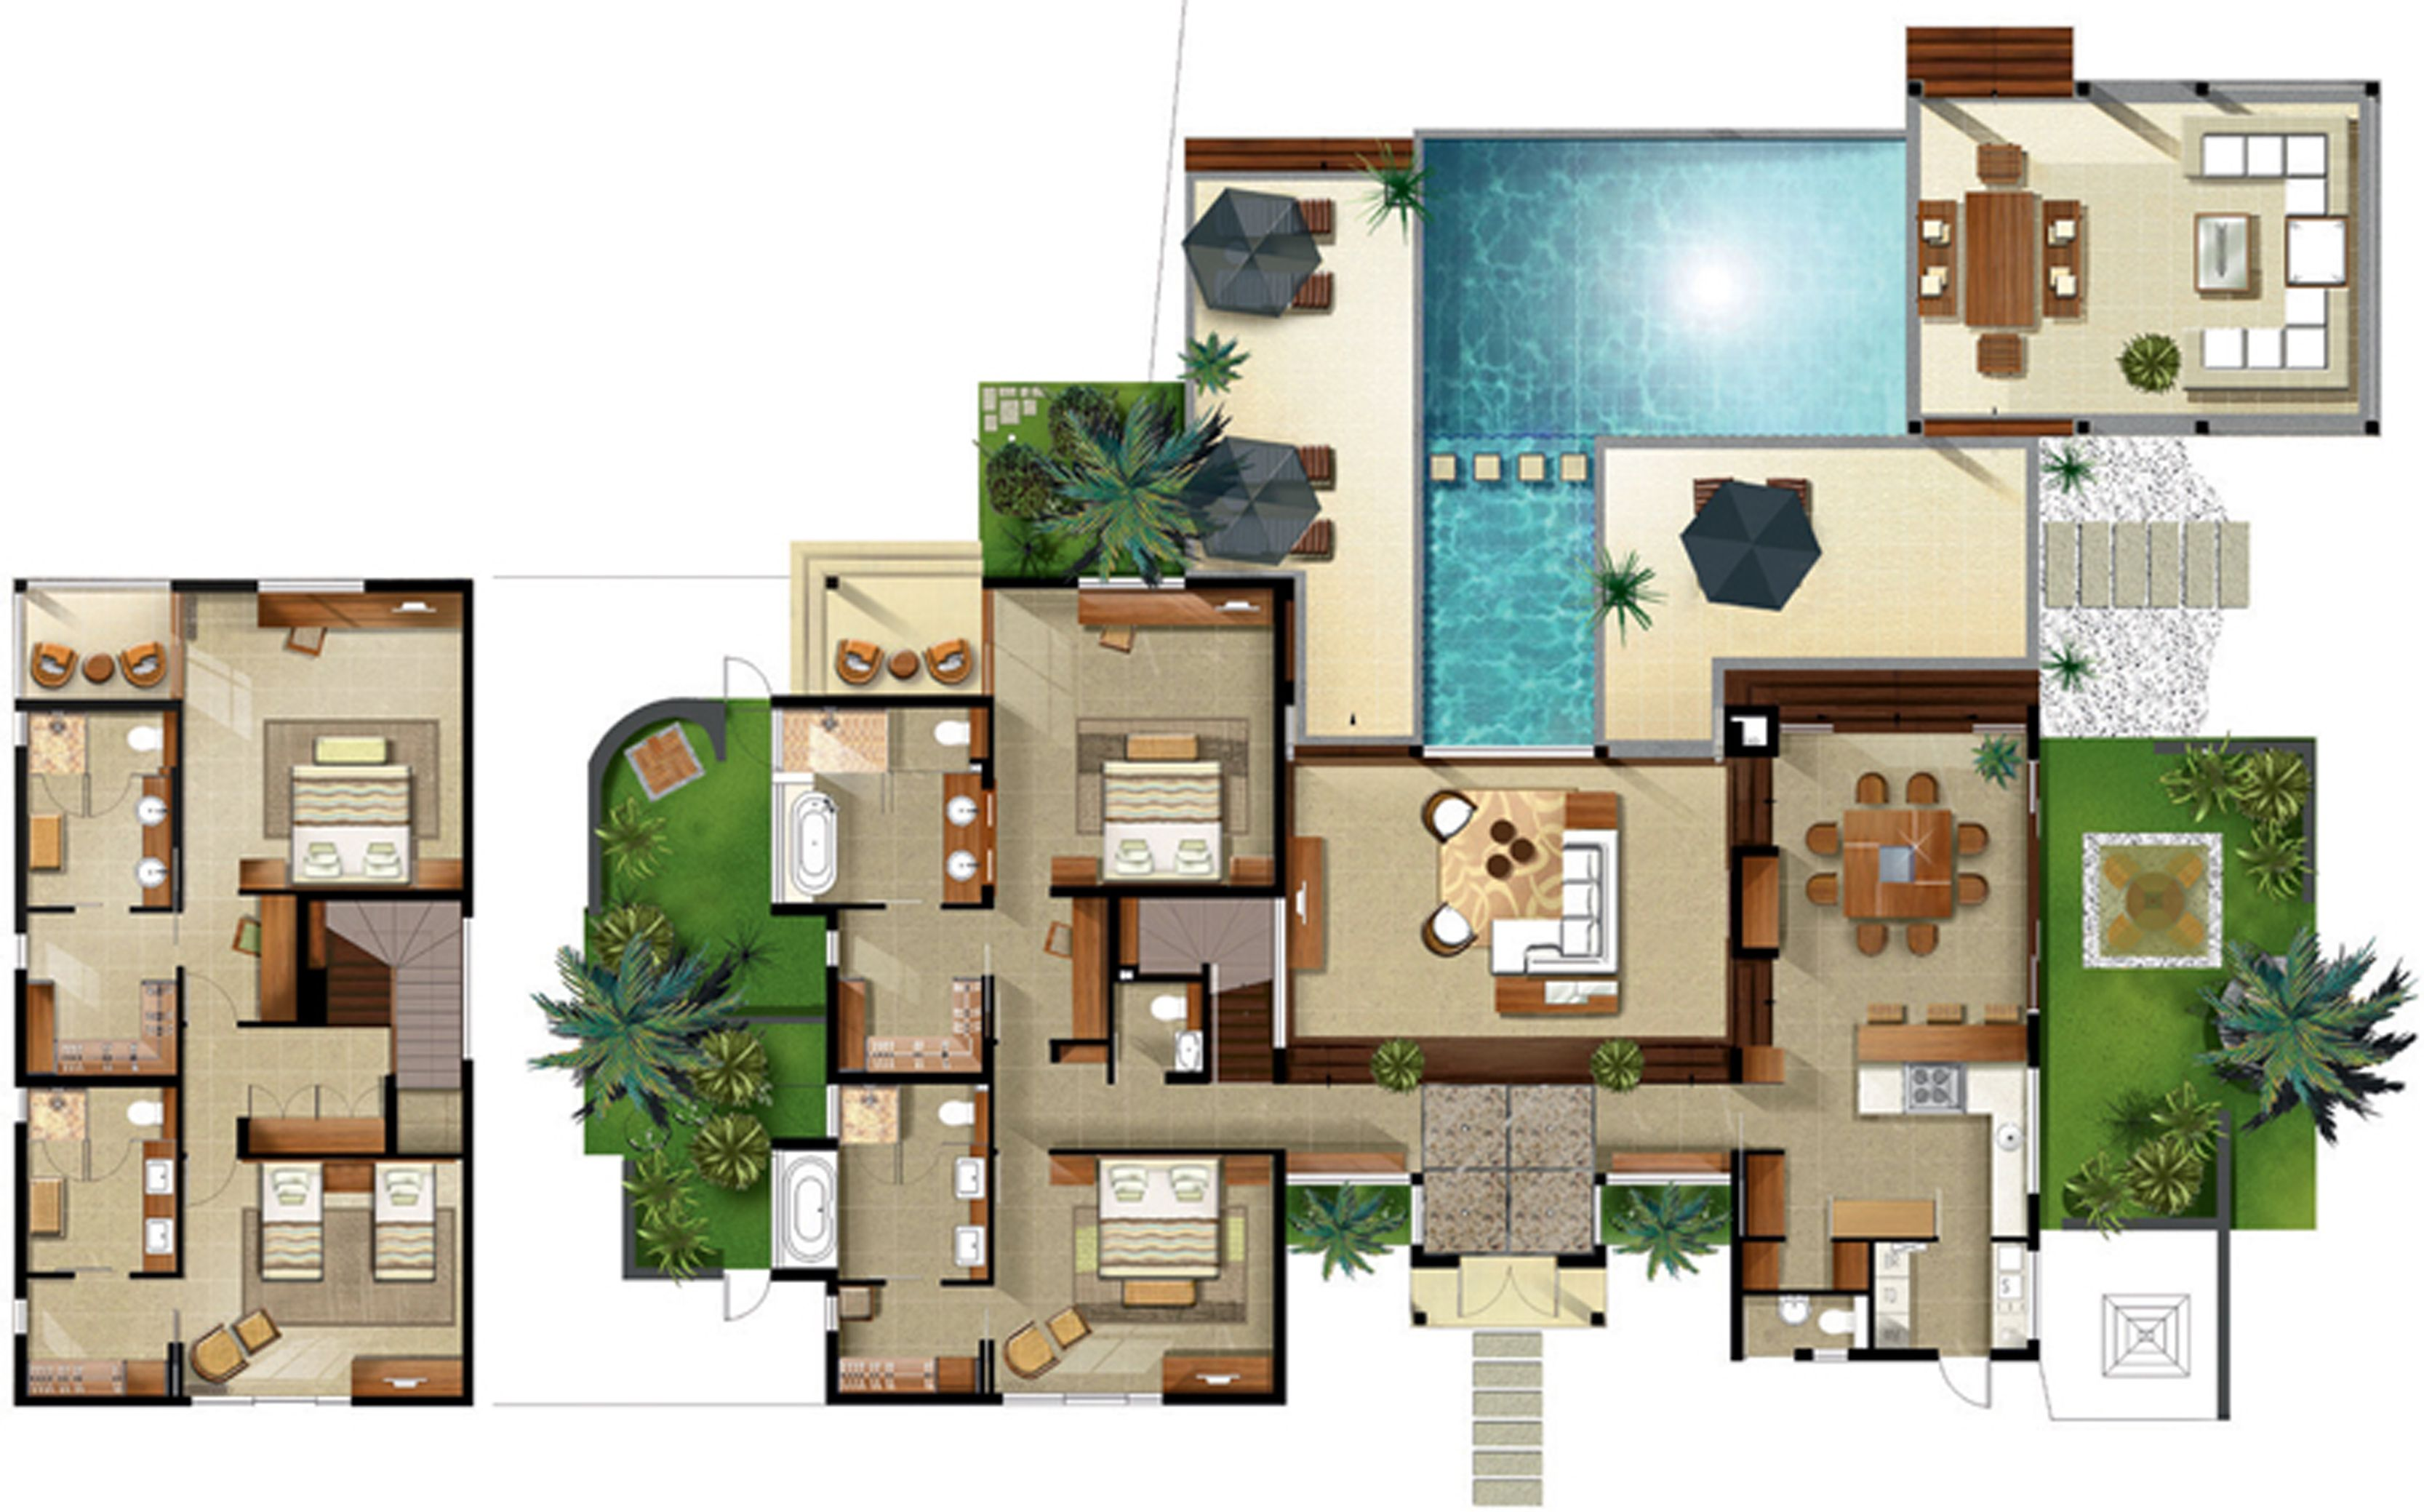 Disney beach club villas floor plan resort villa floor for 4 bedroom villa plans